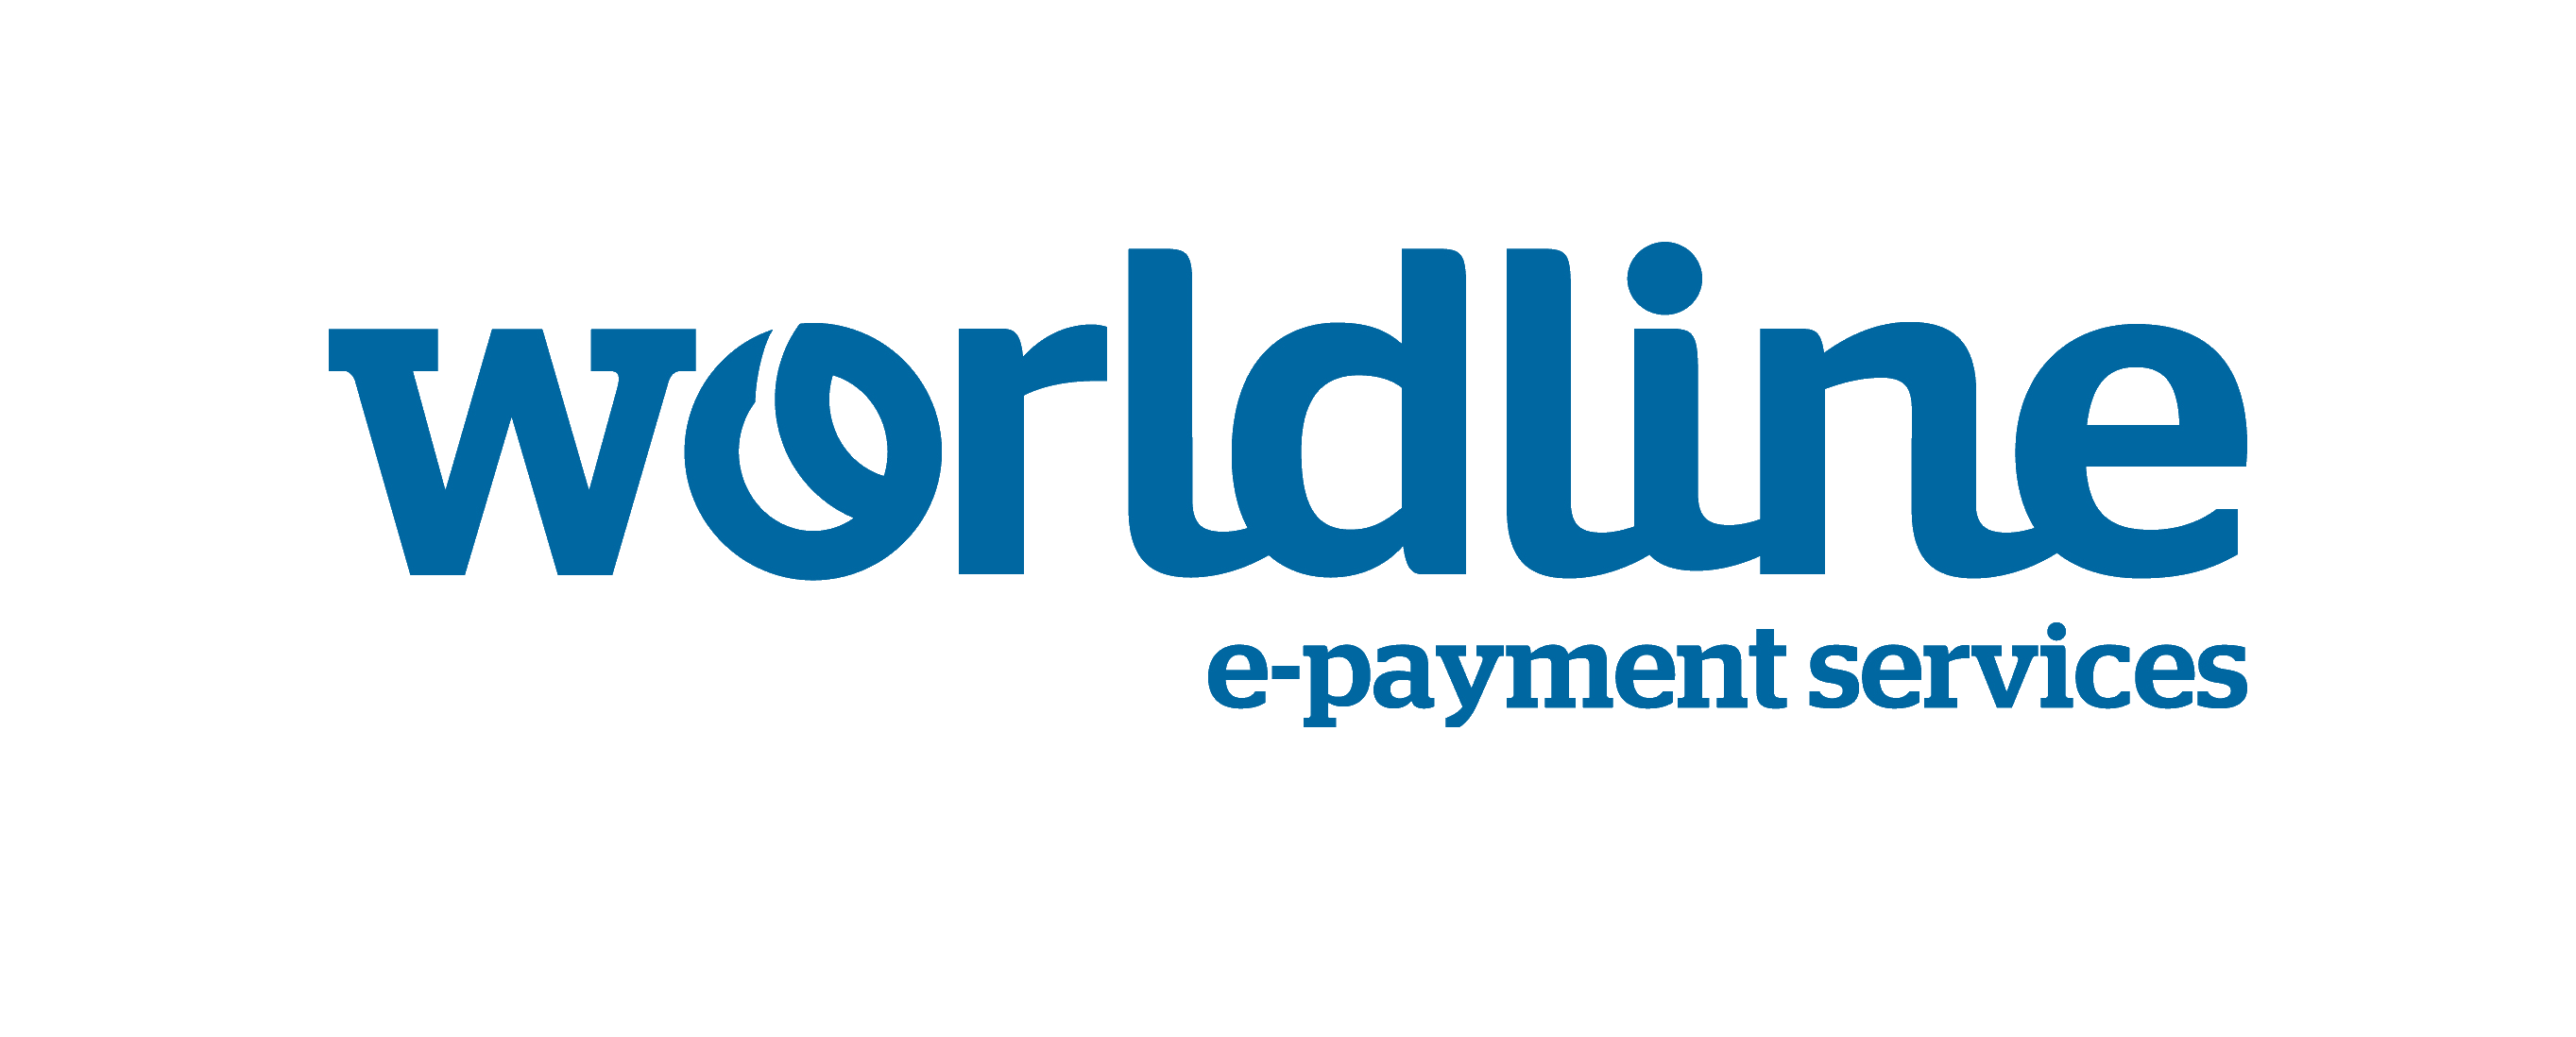 Worldline Welcomes Ingenico, Creating a New World-Class Leader in Payment Services